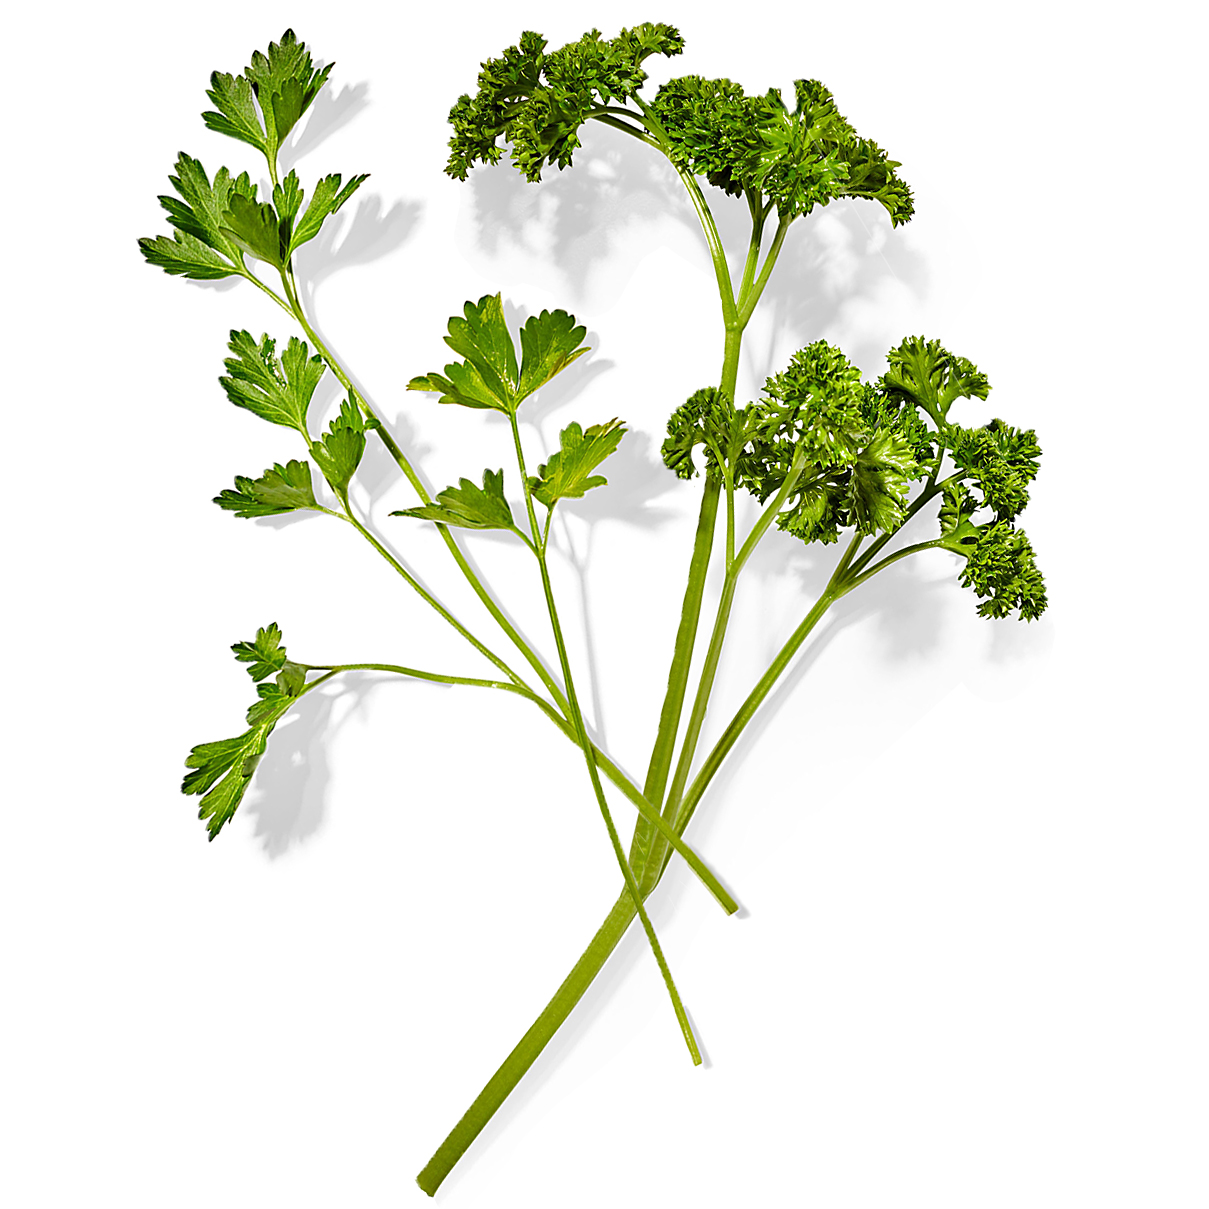 flat-leaf and curly parsley sprigs